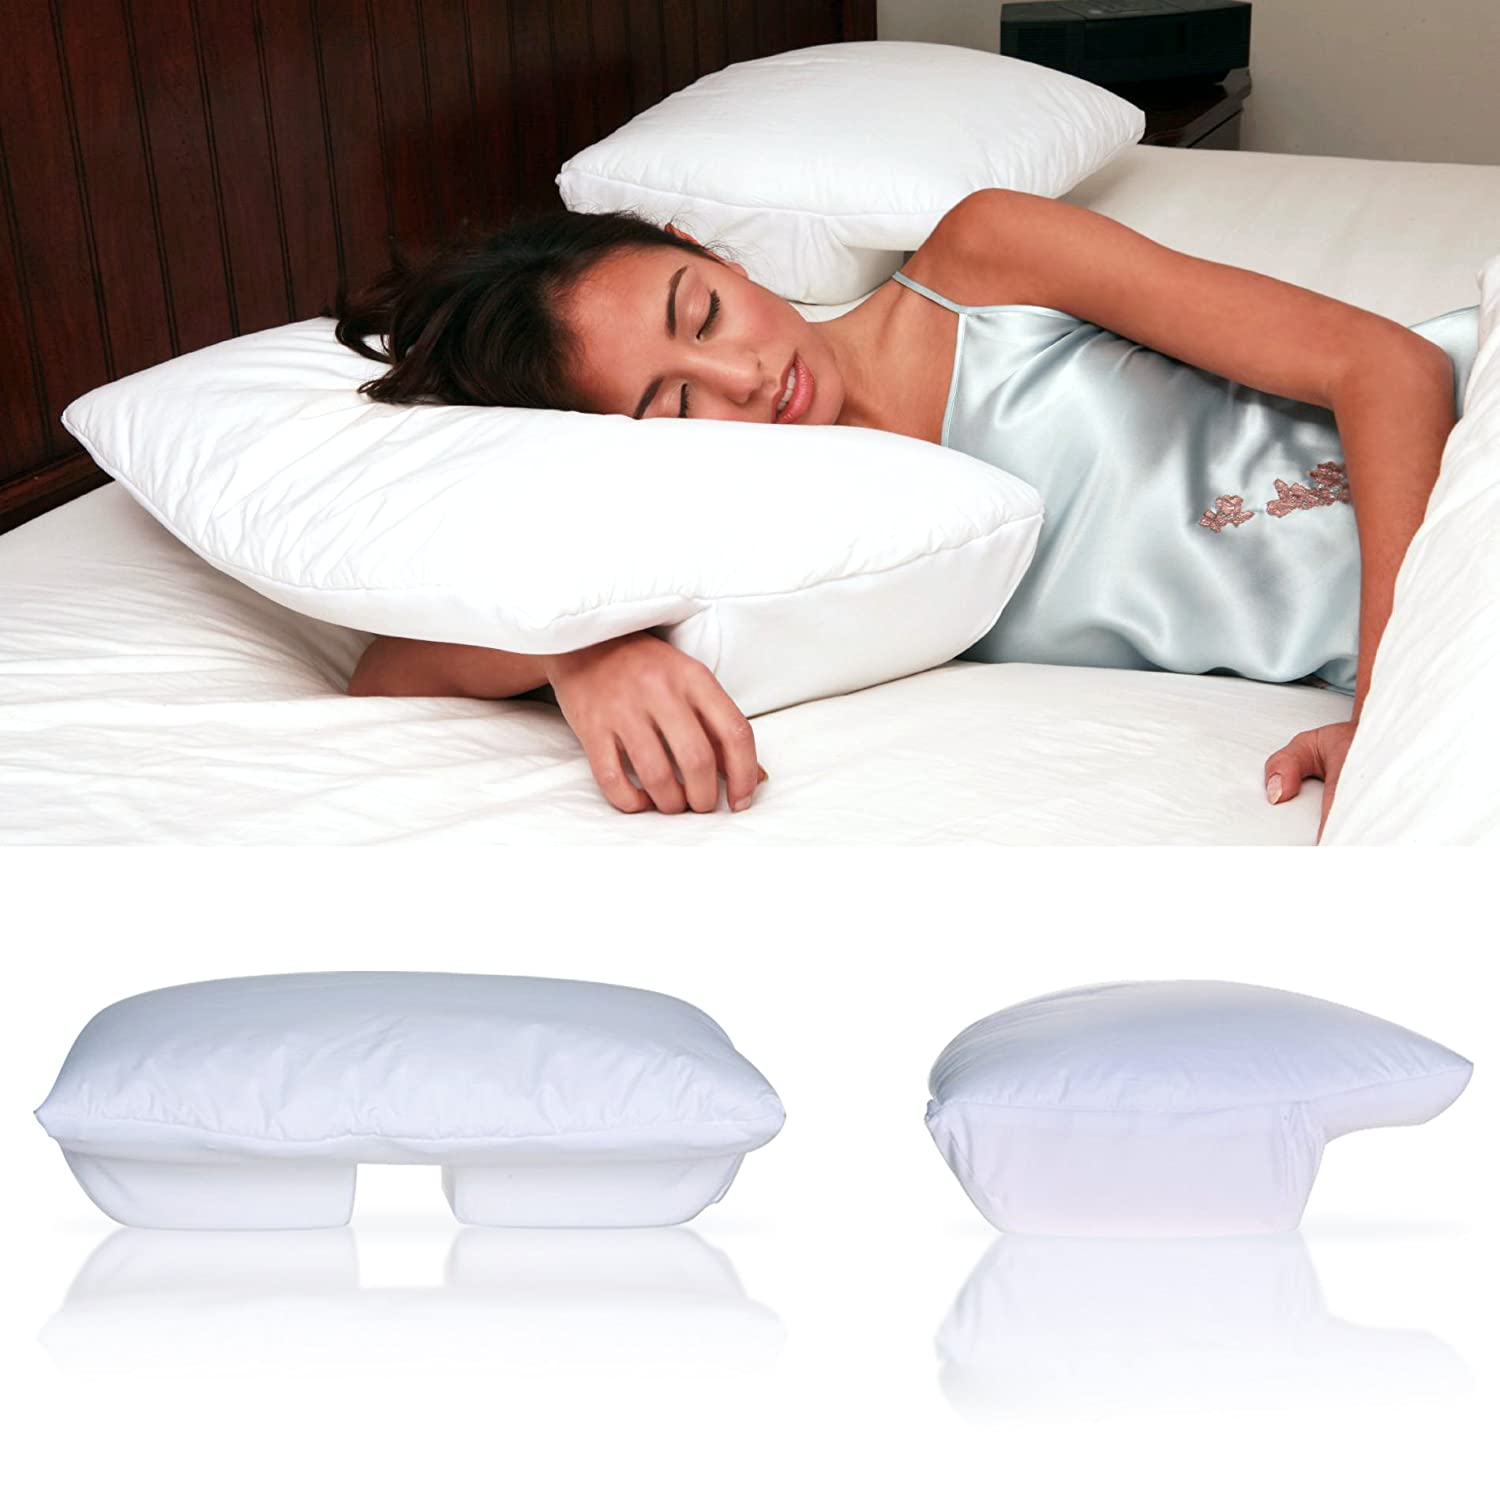 Amazon.com: Better Sleep Pillow   Memory Foam 5 Inch Hight With Cream  Velour Cover   Tempur Neck Pillow   Sleeping On Arm Under Pillow Best For  Side And ...